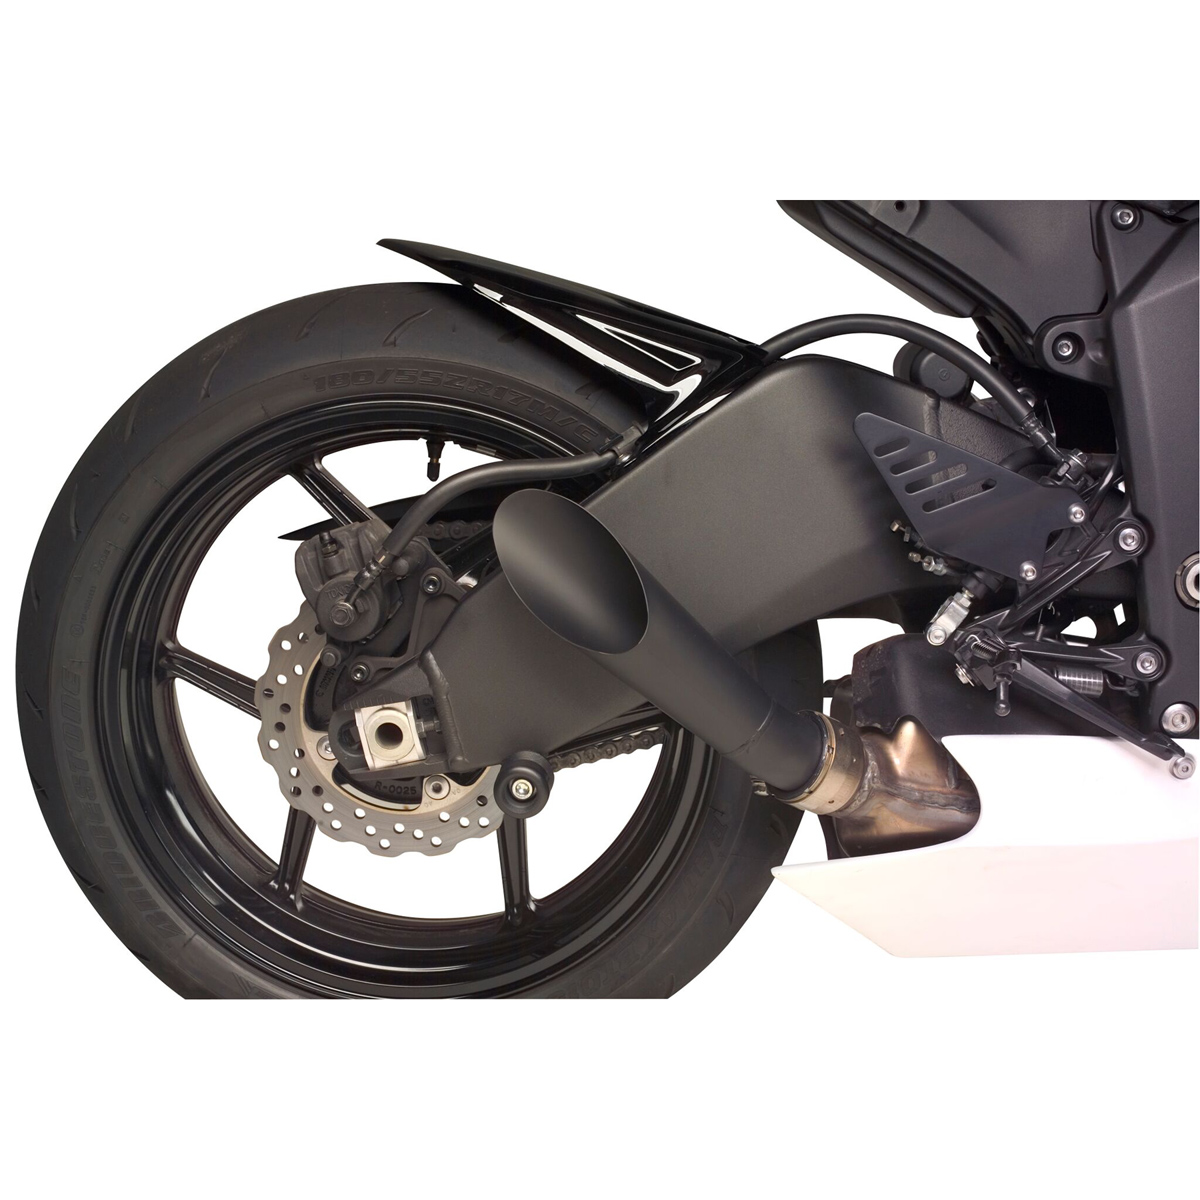 Hotbodies Black Megaphone Slip-on Exhaust